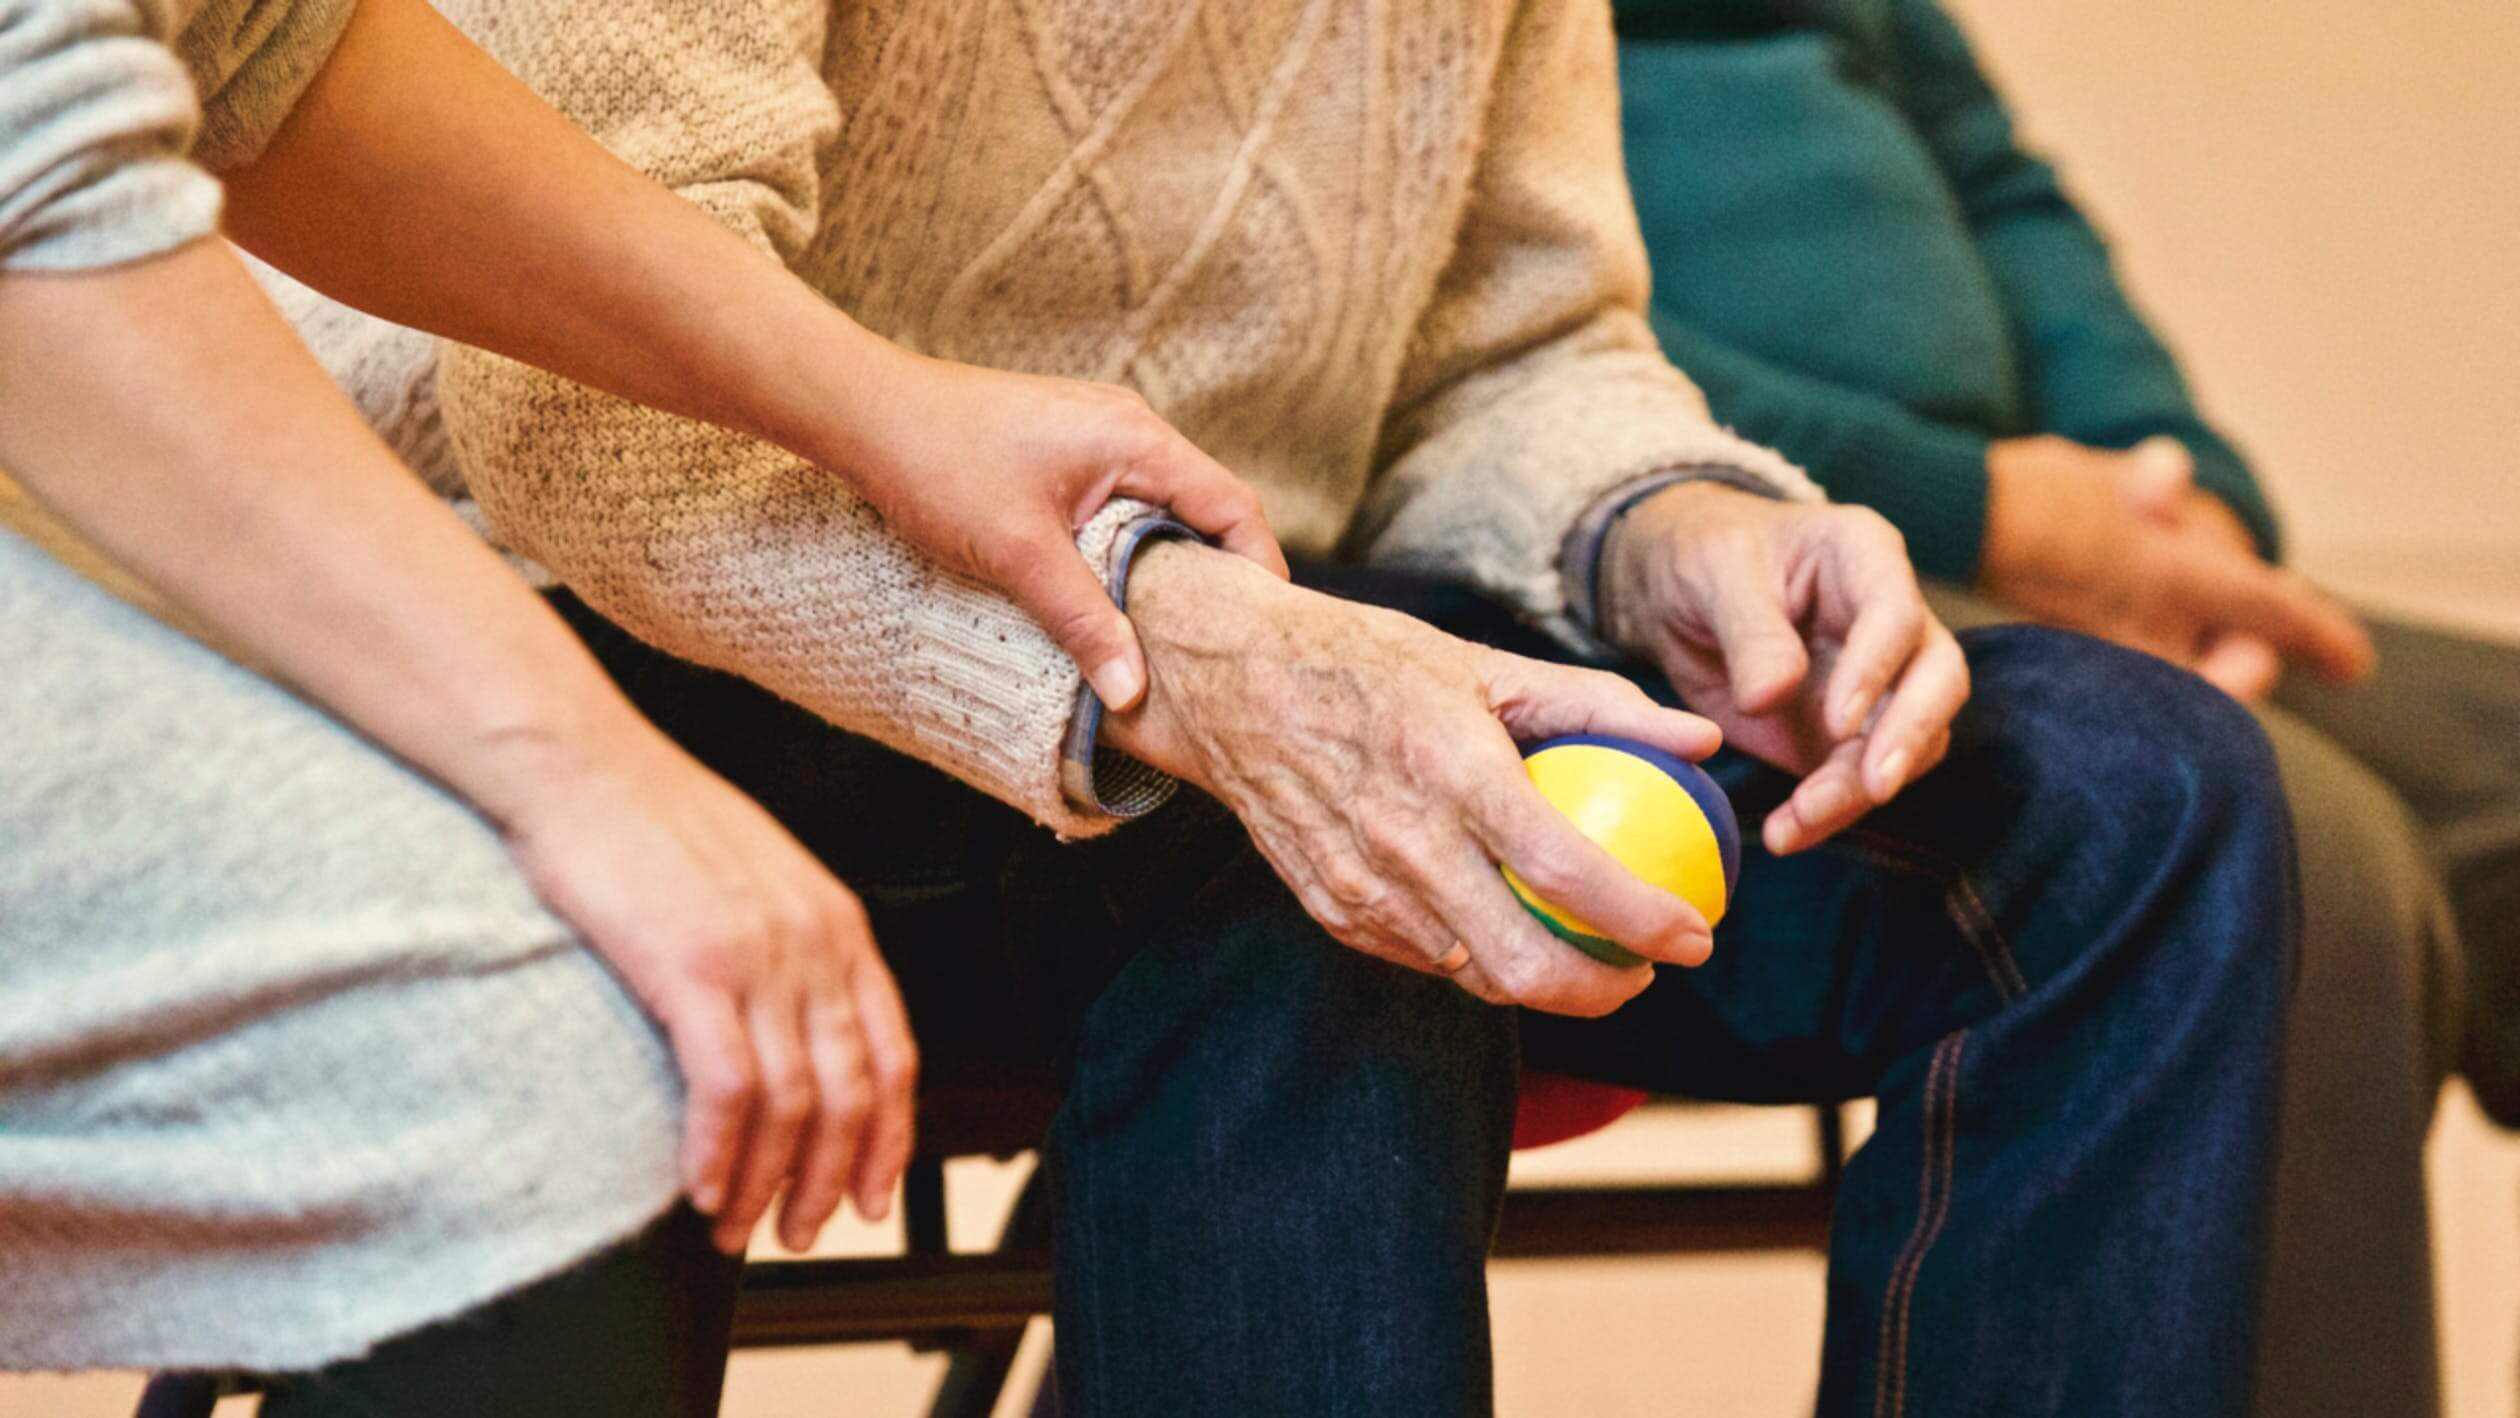 An older man in a nursing home working on physical therapy